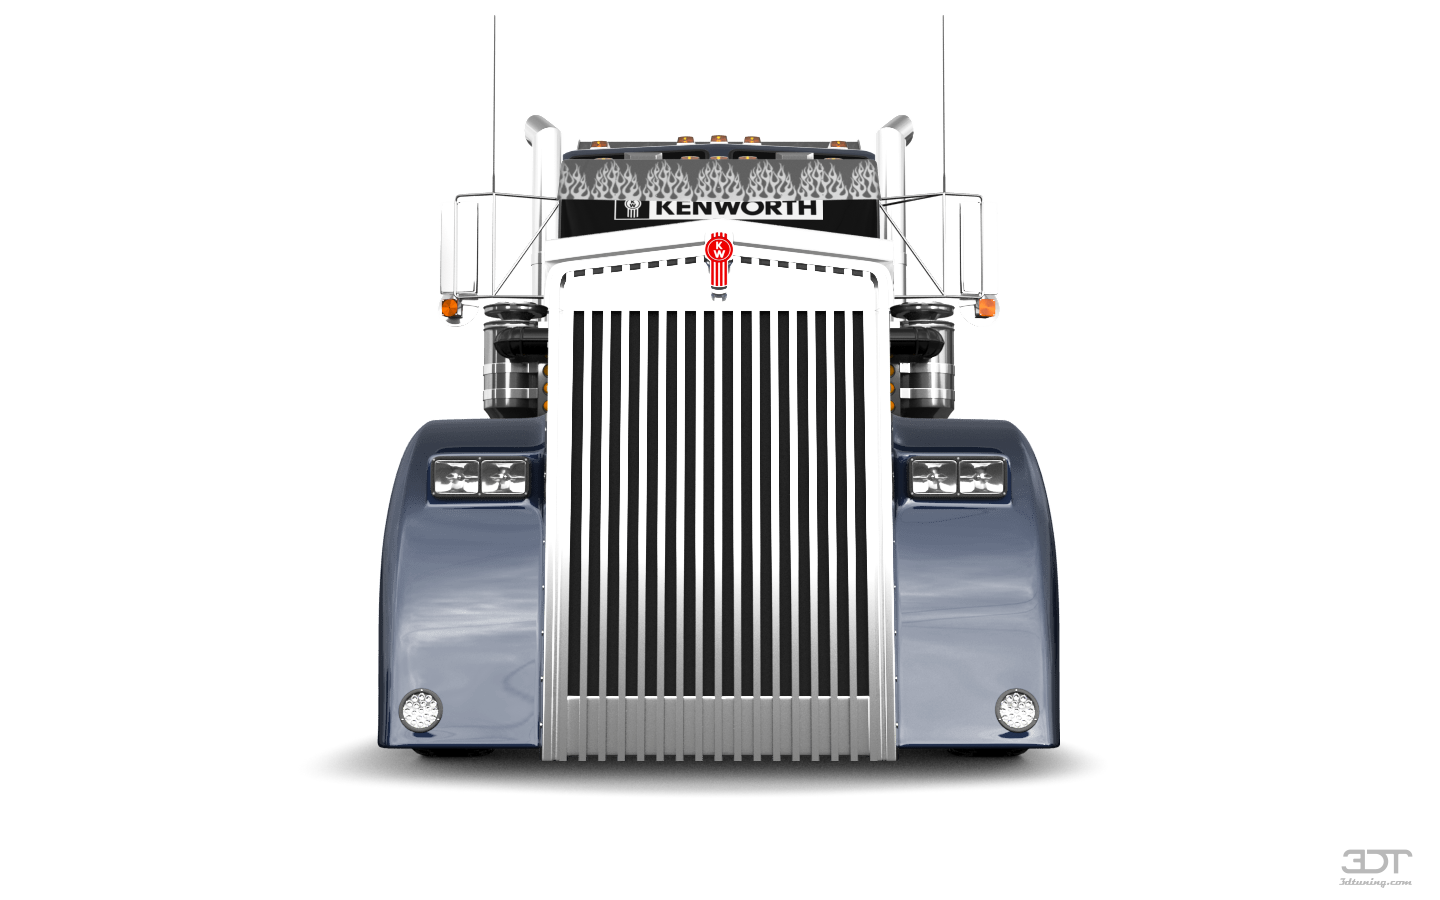 Kenworth W900 Sleeper Cab Truck 2015